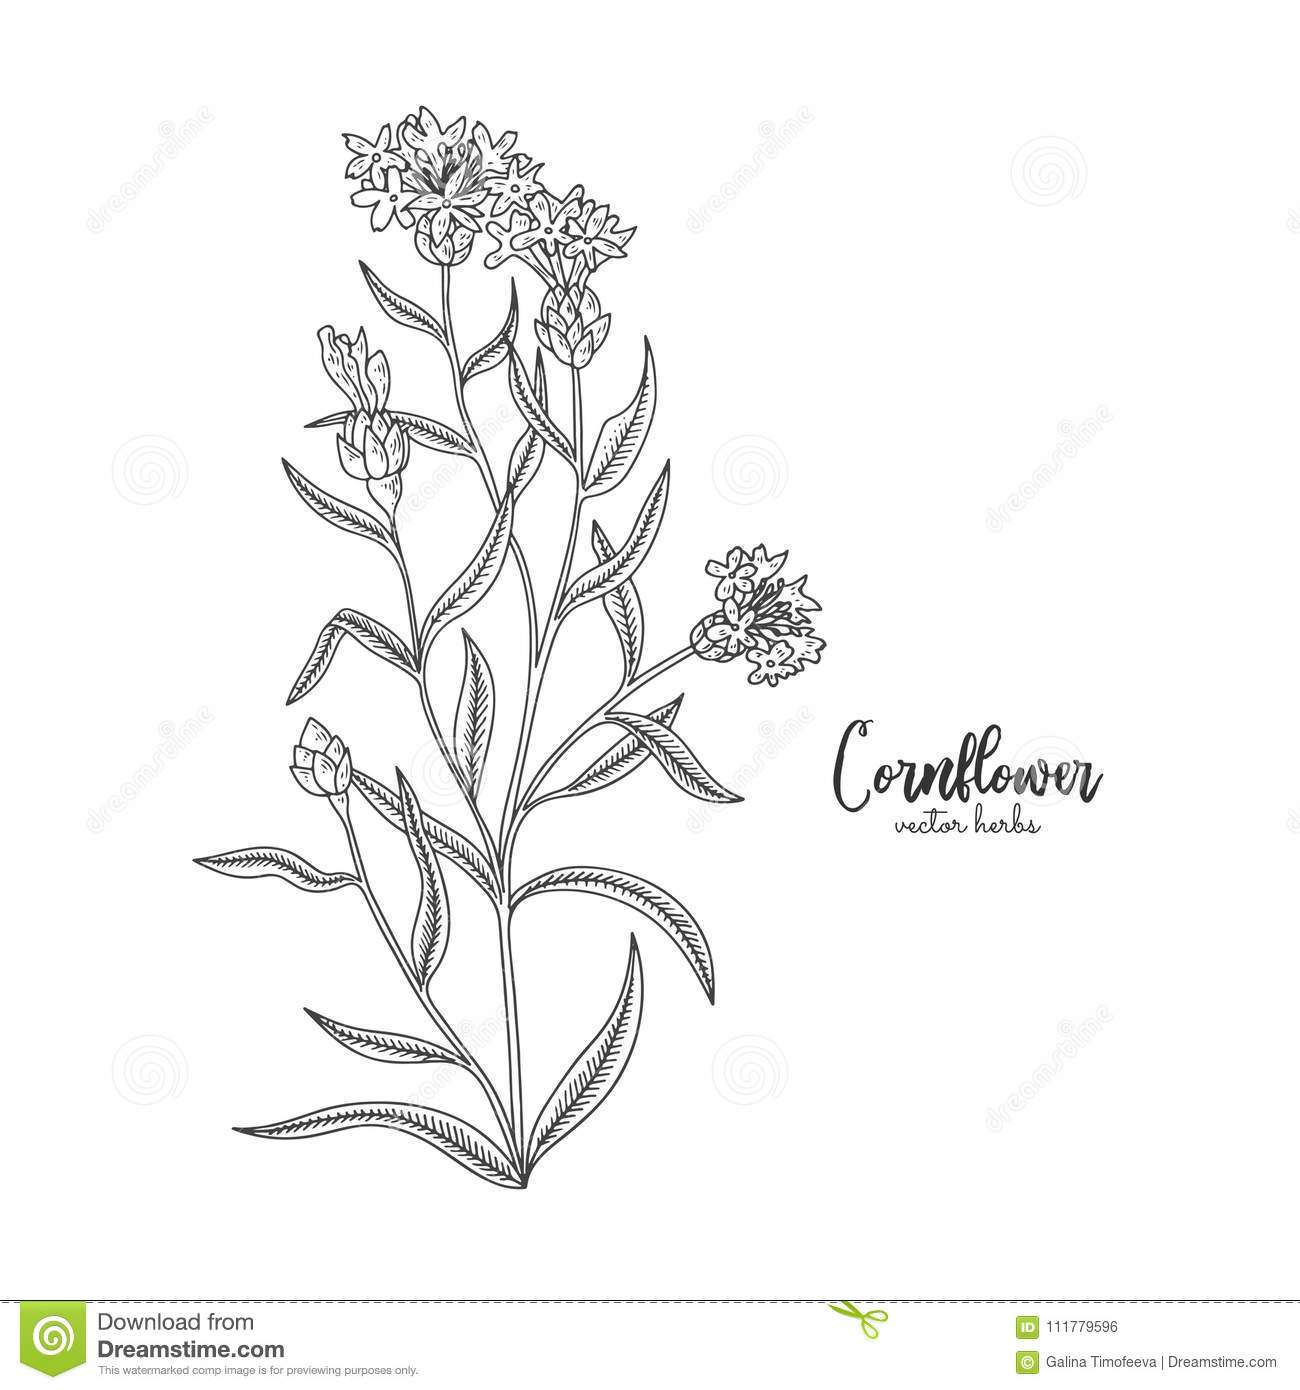 Cornflower. Wild field flower isolated on white background. Healing and cosmetics herb. Medical plant for design package